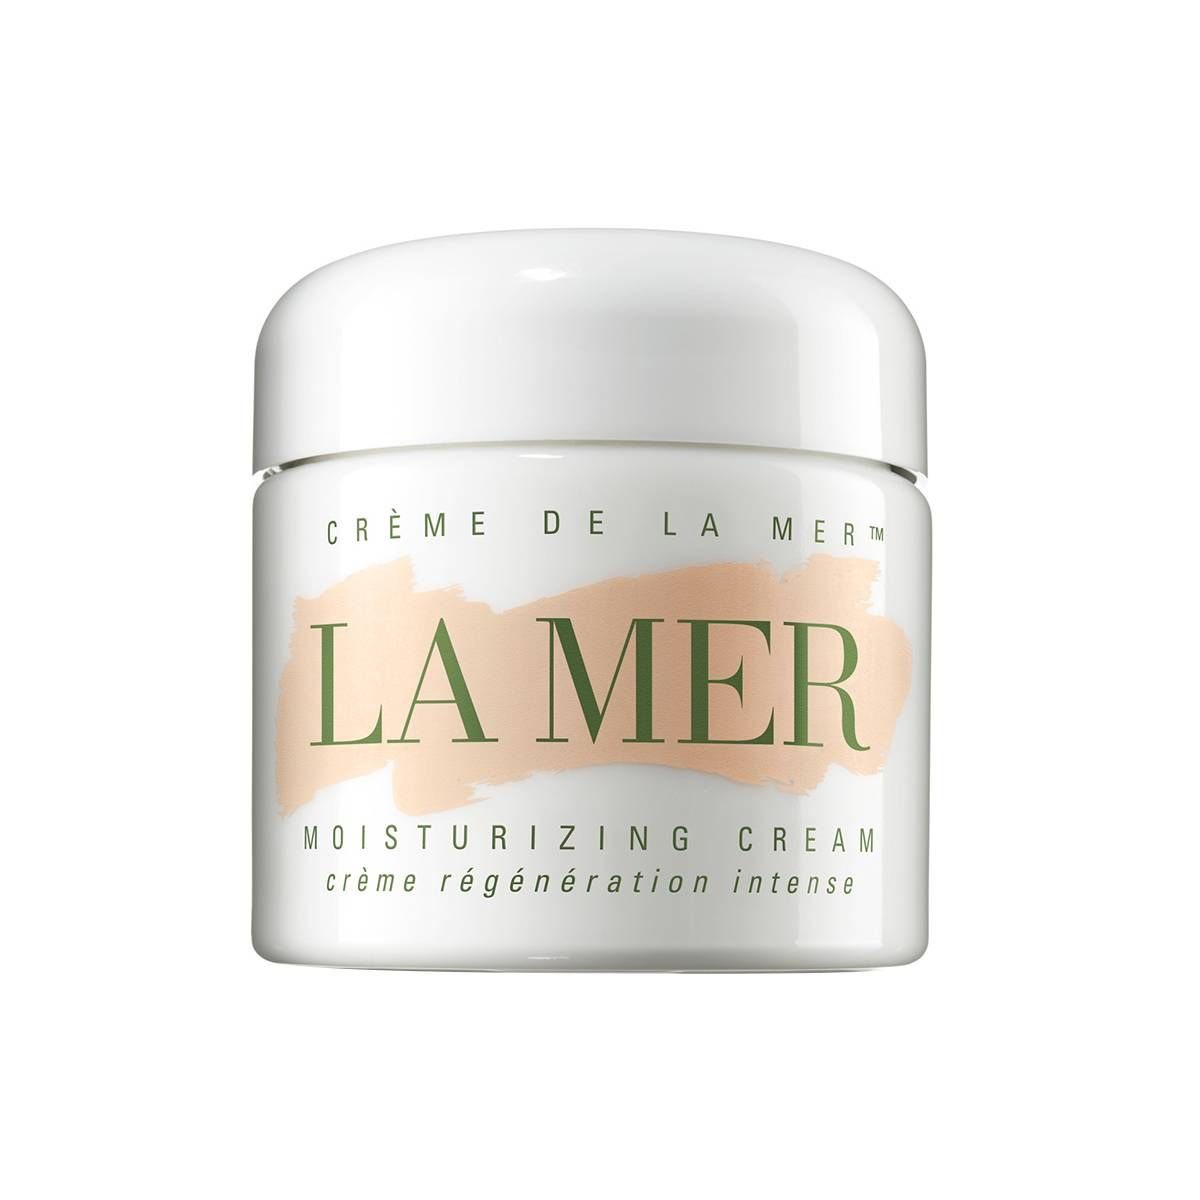 29 bestselling skincare products everyone wants at